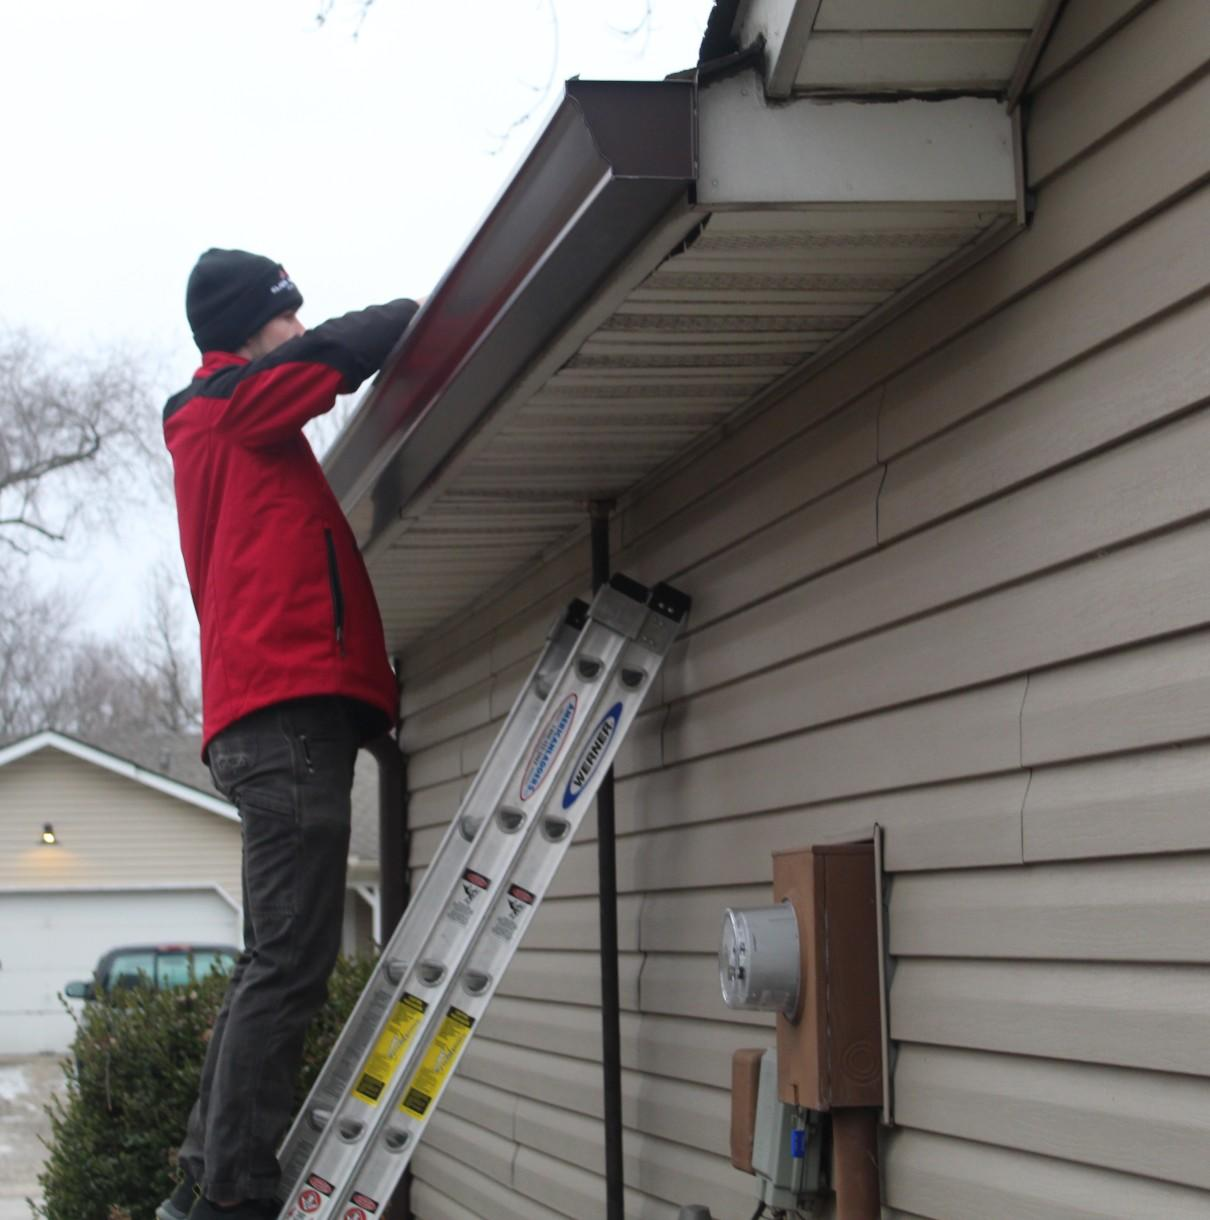 Gutter Guard System Being Installed